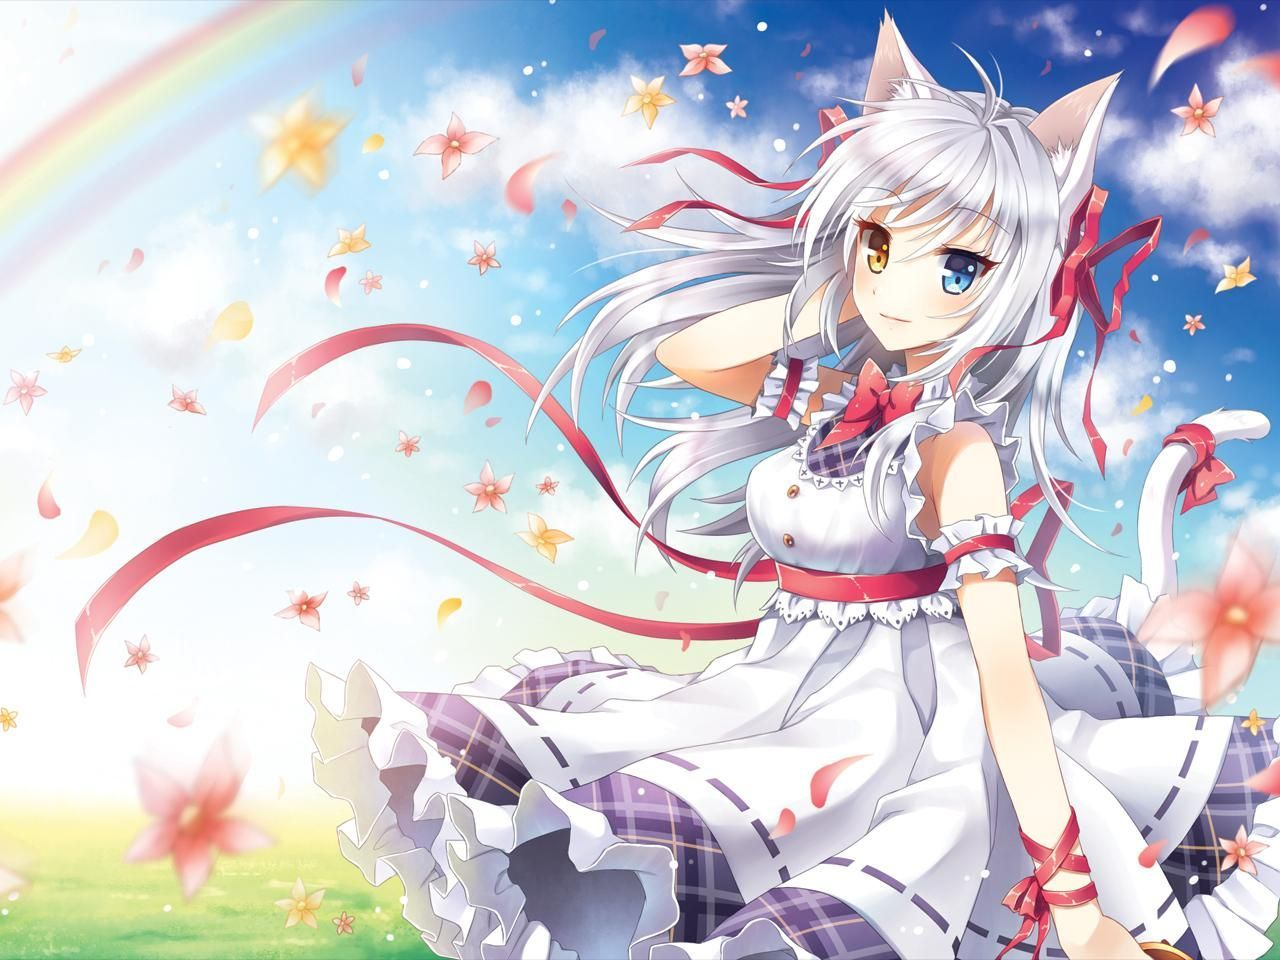 1280x960 Cat Girl Wallpapers | New HD Wallpapers | Anime | Anime cat, Anime ...